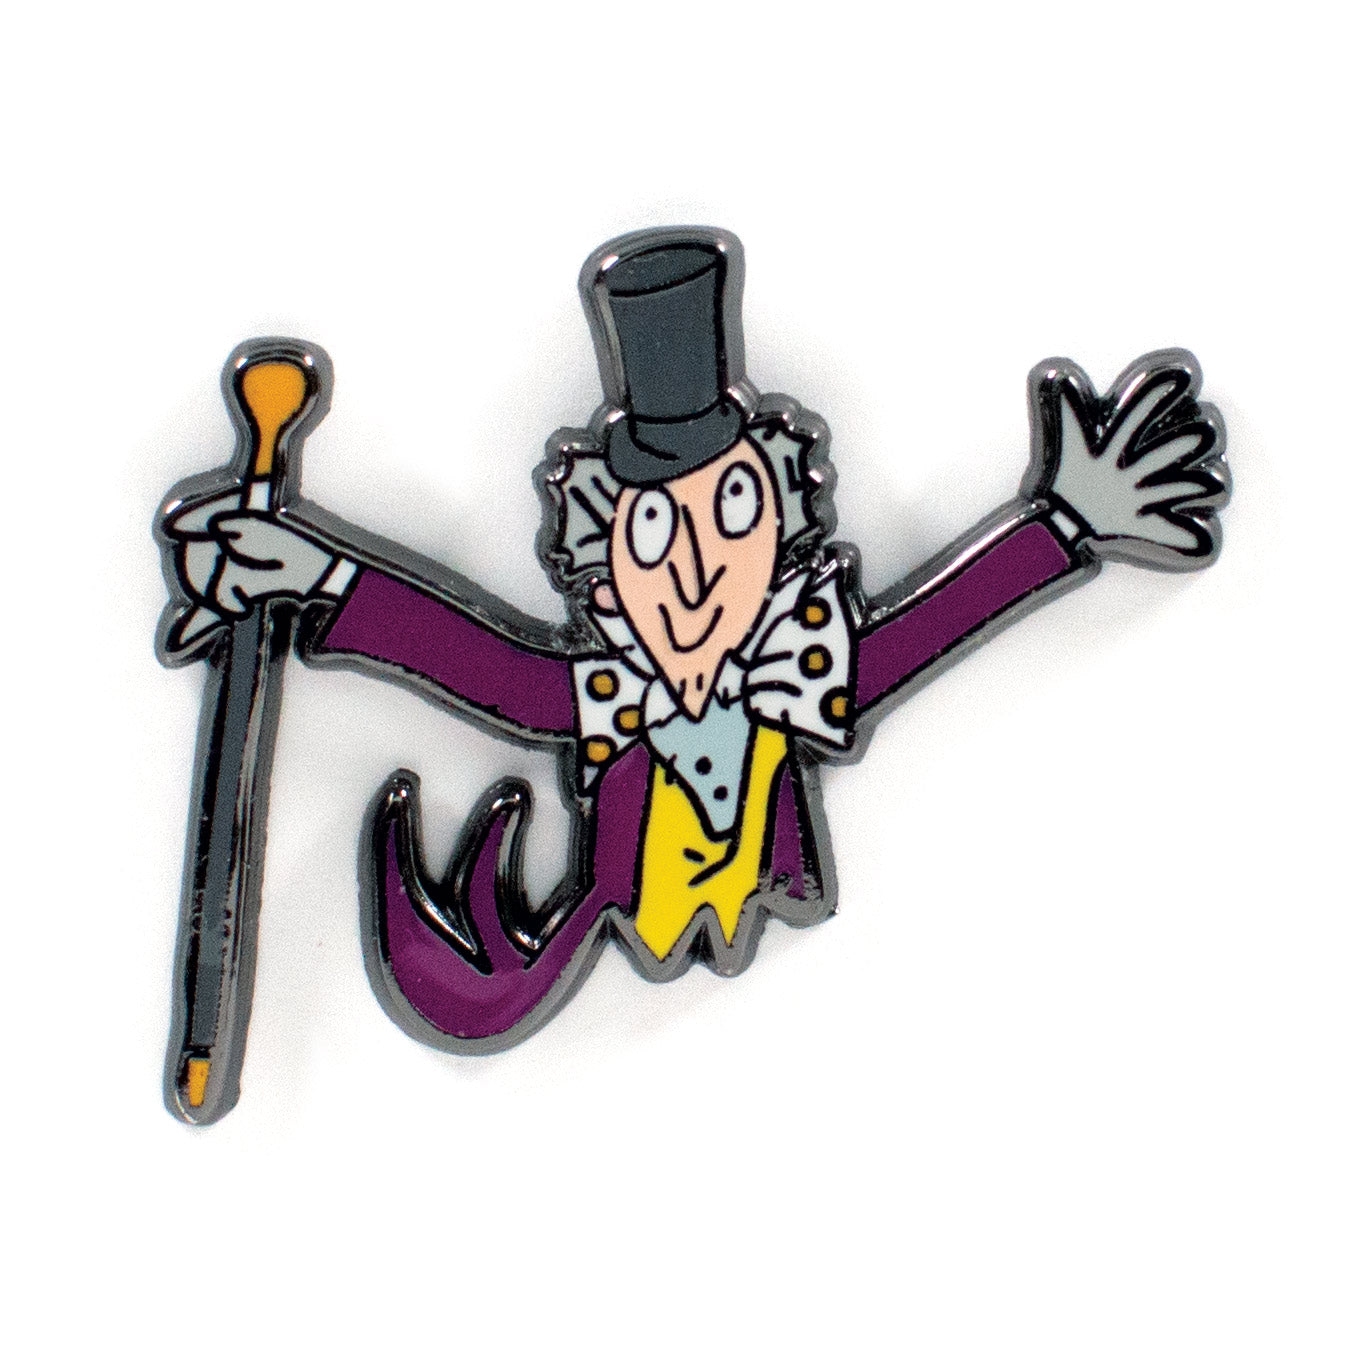 Willy Wonka Pin Set